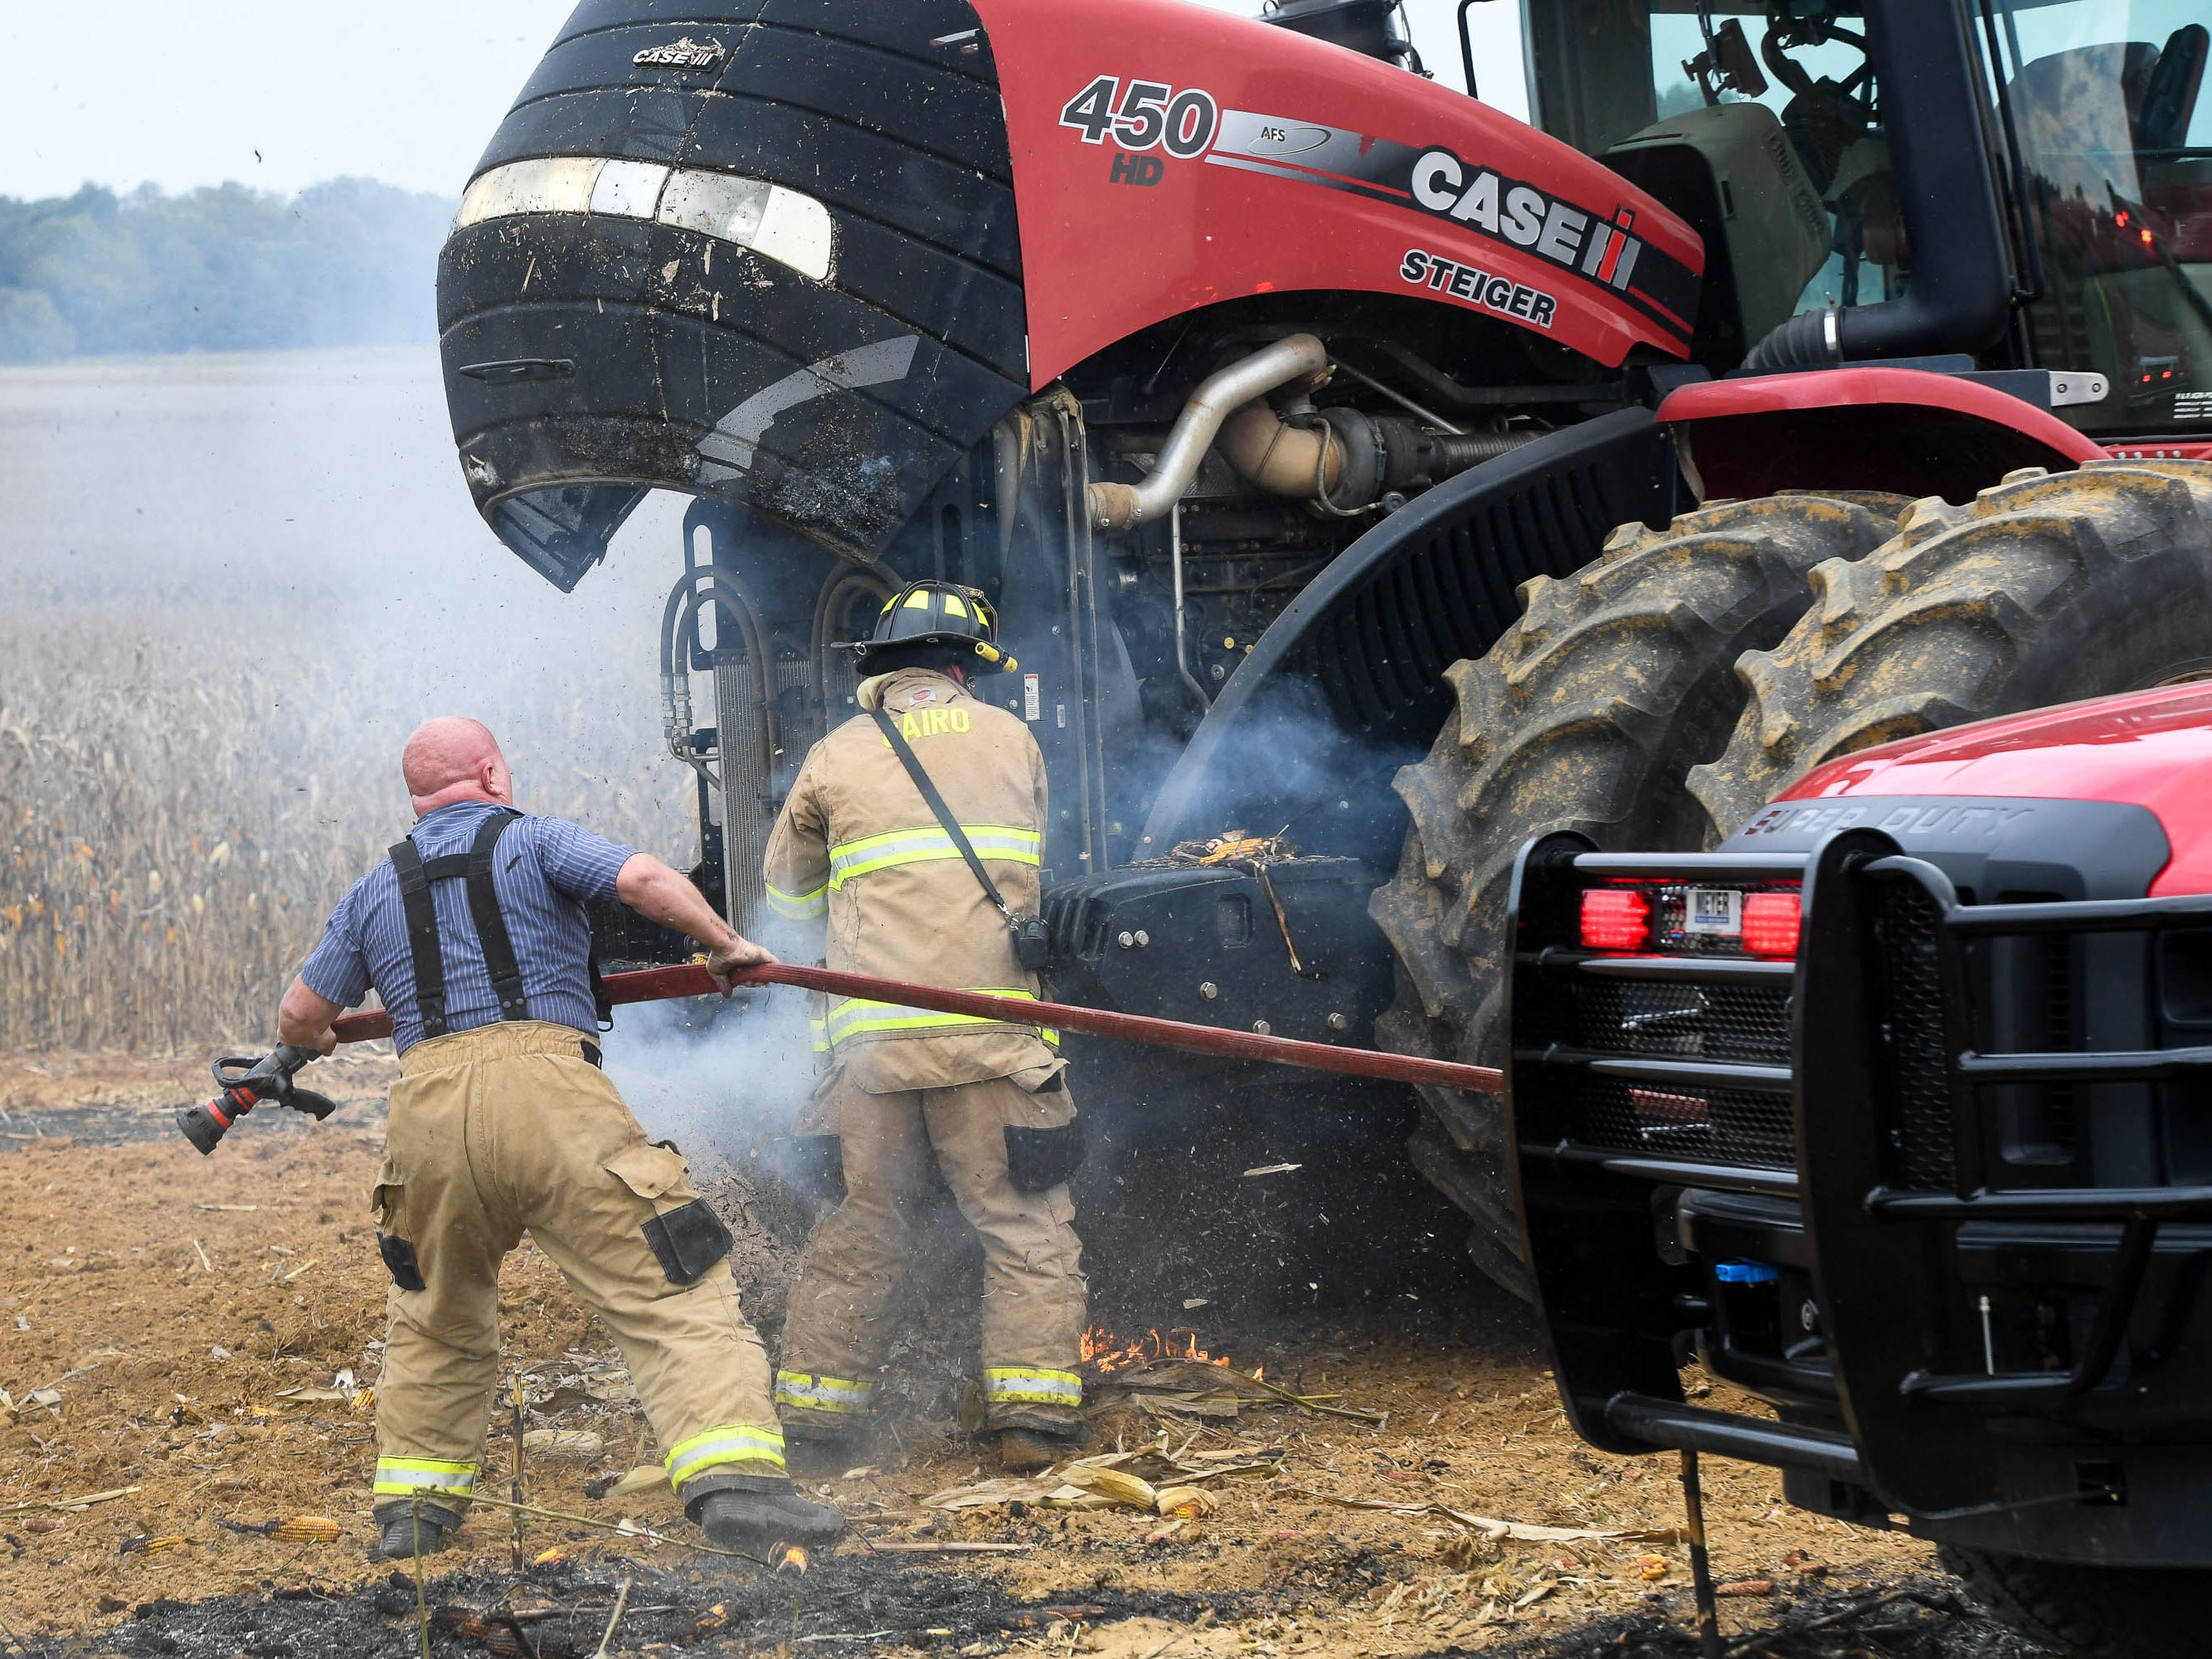 Volunteer firemen frantically remove burning corn debris from a tractor owned by Cory Duncan after he helped his neighbor, Dale Dixon, put out a fire in his corn field that burned two semi-tractor trailers while harvesting corn Friday. September 21, 2018.